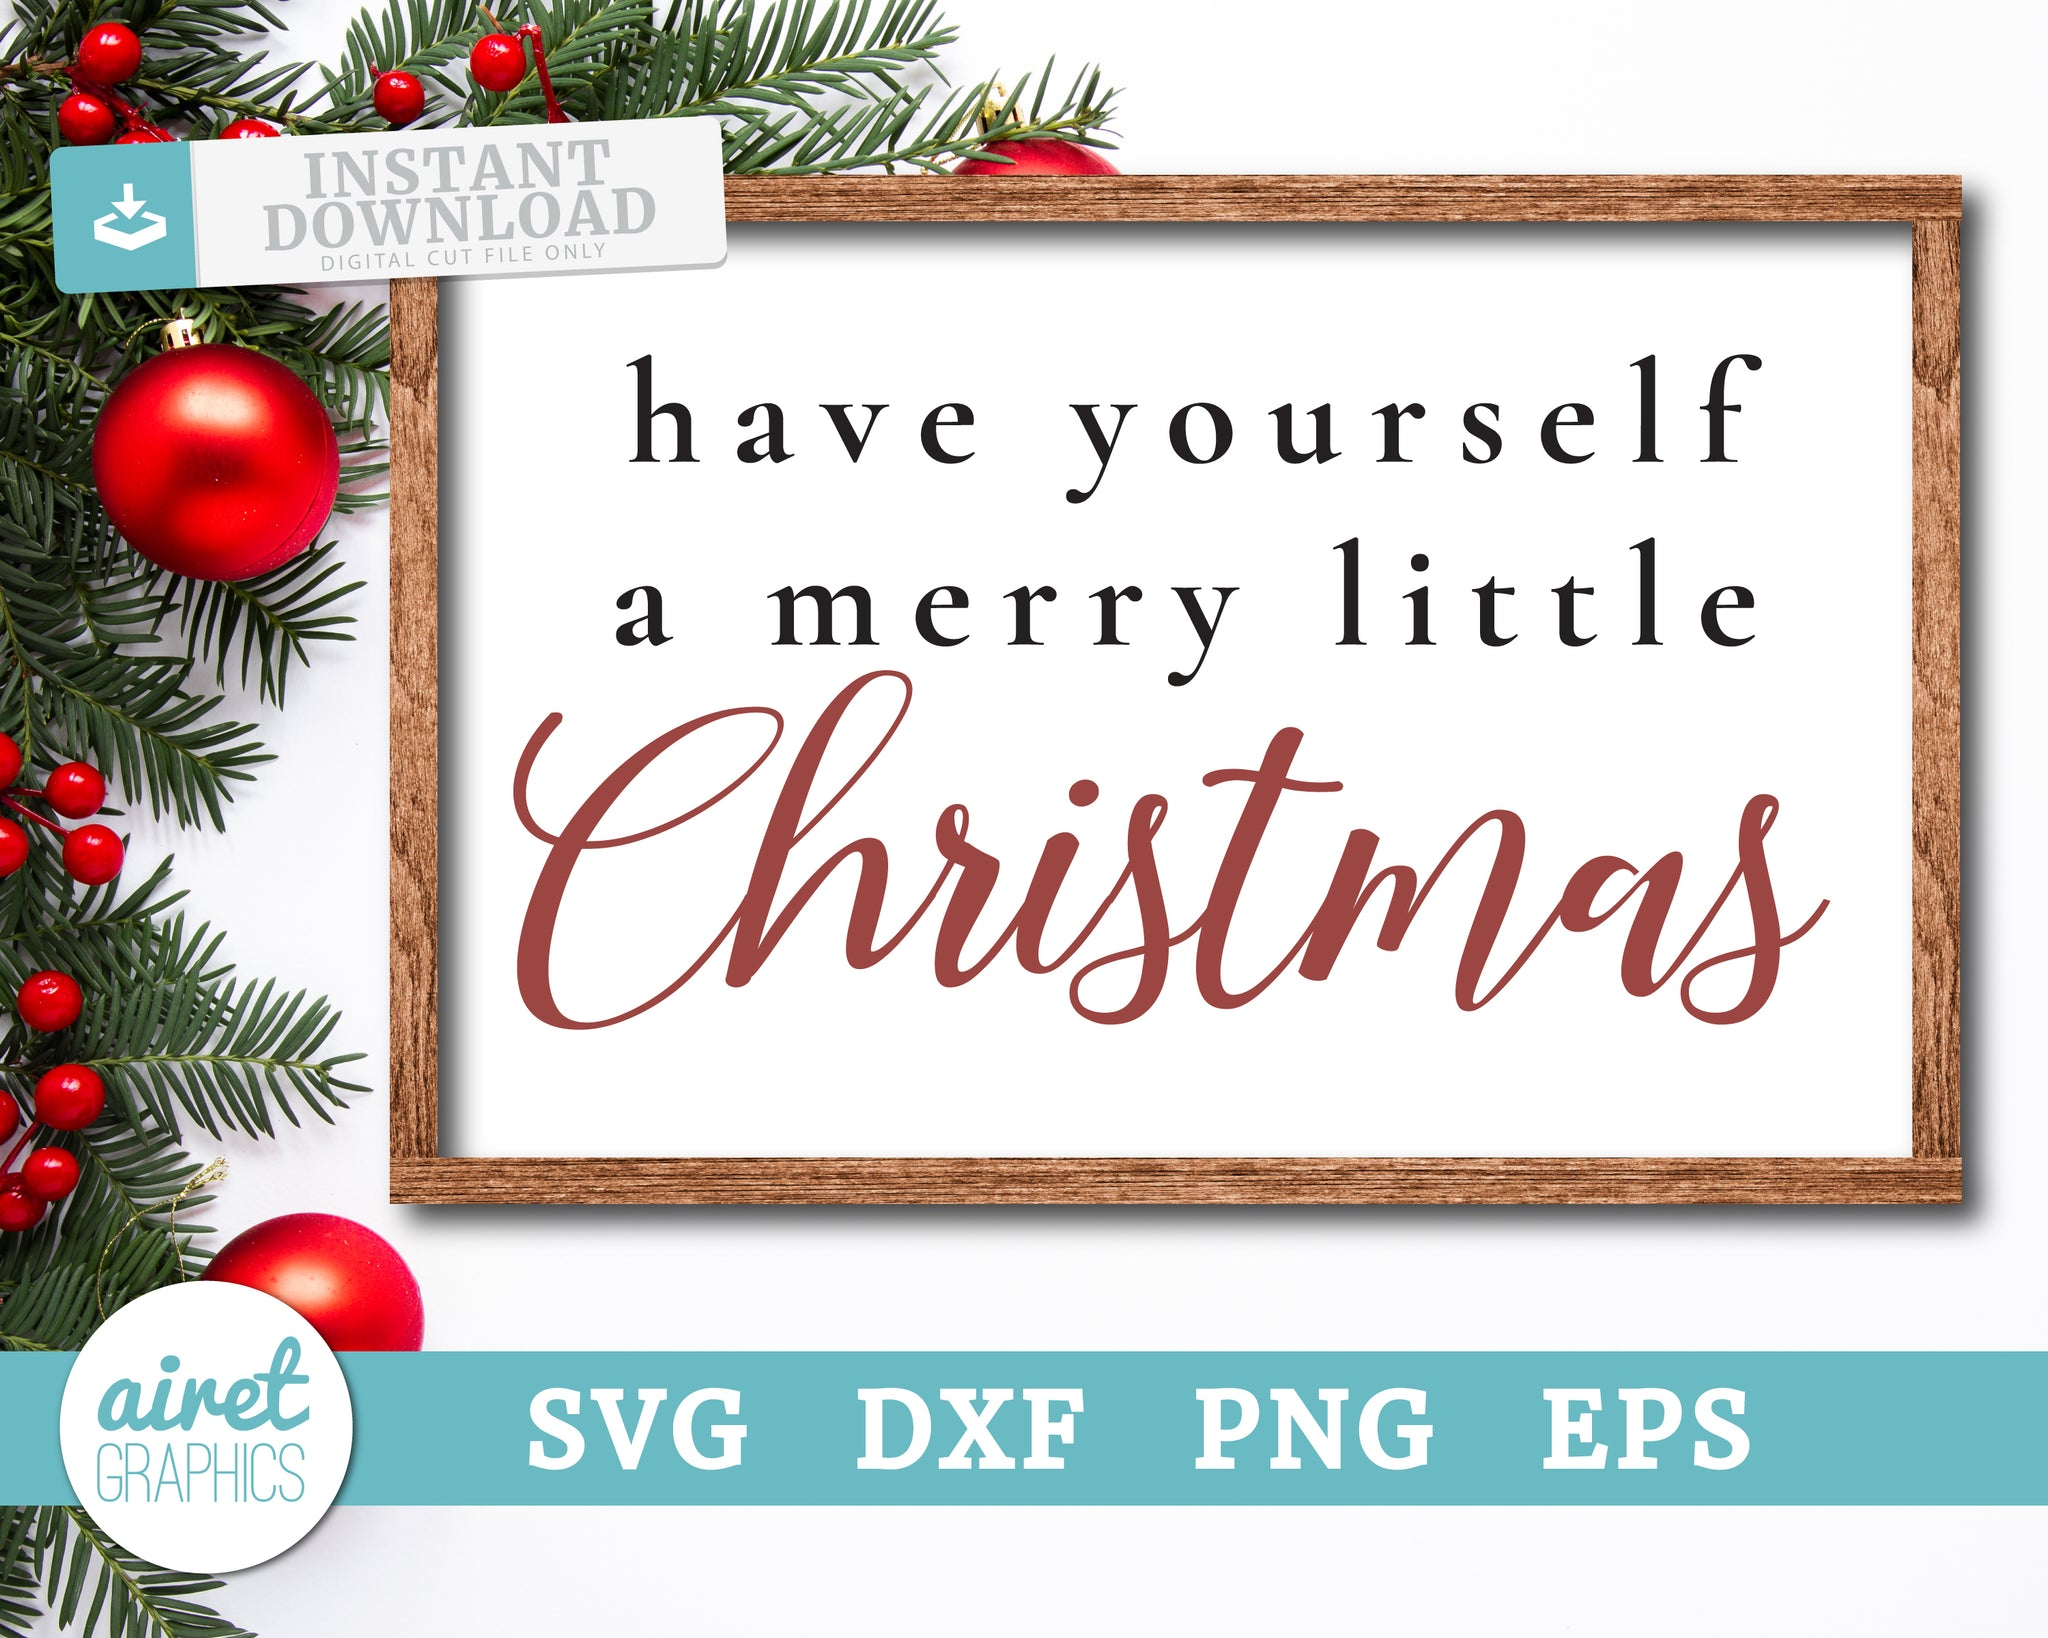 have yourself a merry little Christmas - Digital Cut File Download SVG EPS DXF PNG